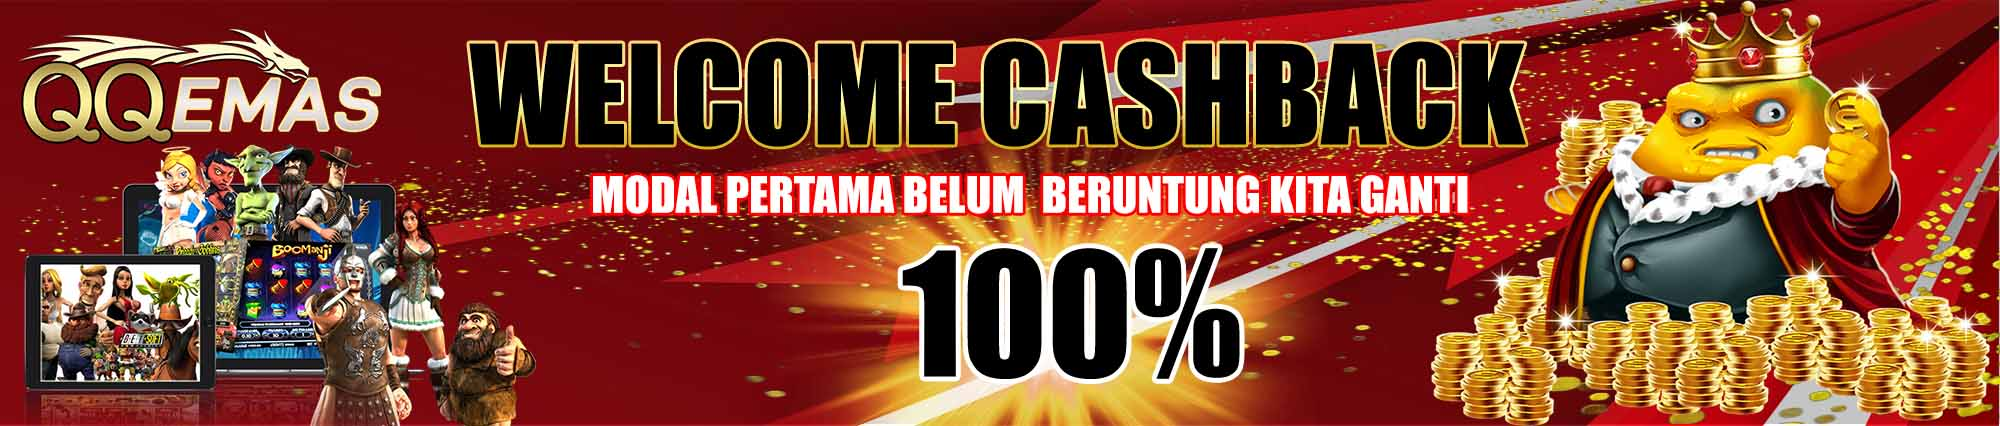 bonus welcome cashback